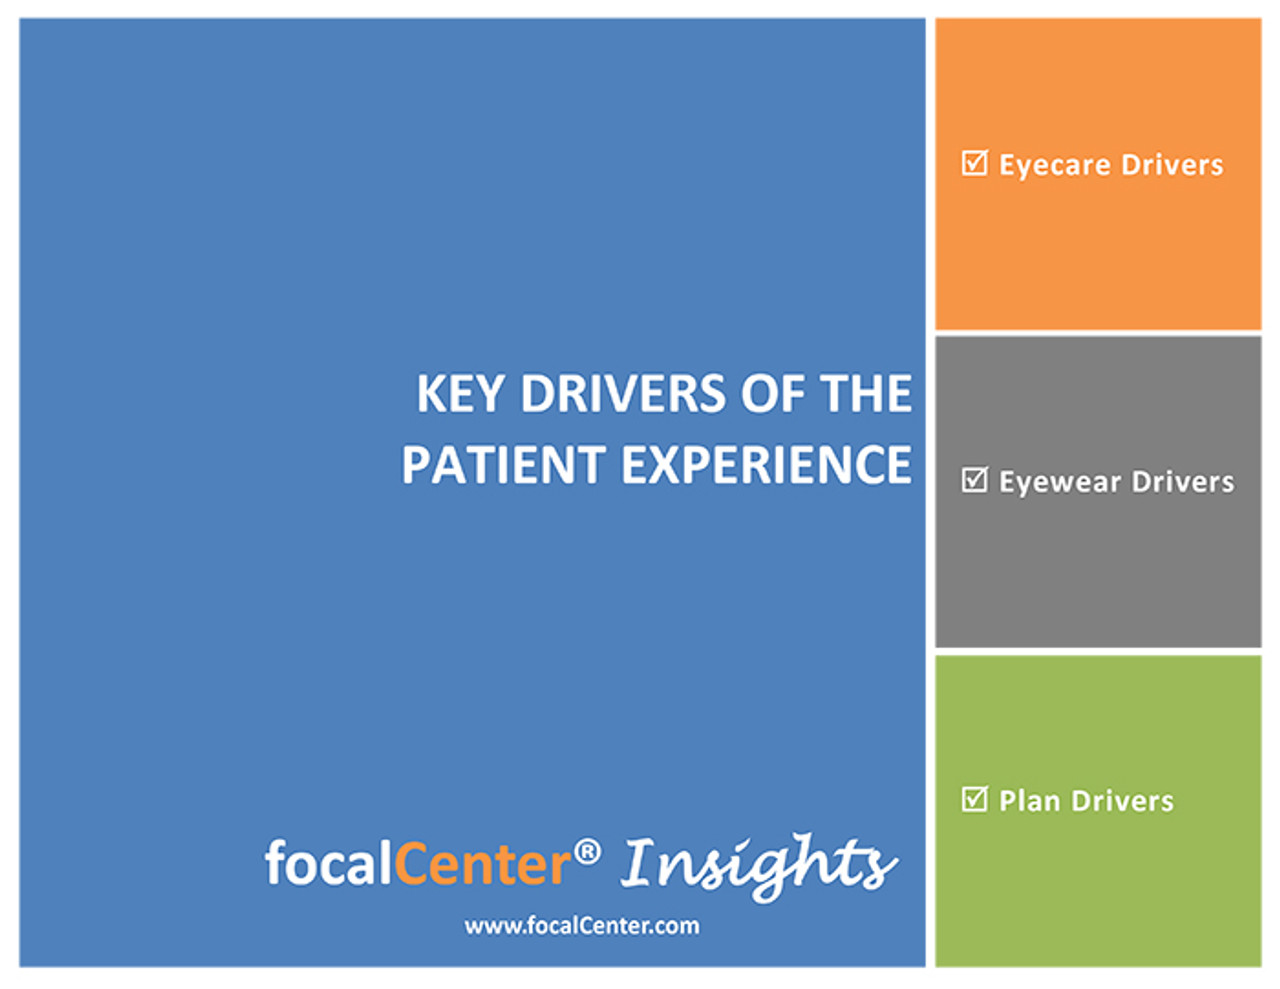 Key Drivers of the Patient Experience: -- Focus Group Perspectives on EYECARE & EYEWEAR & PLAN